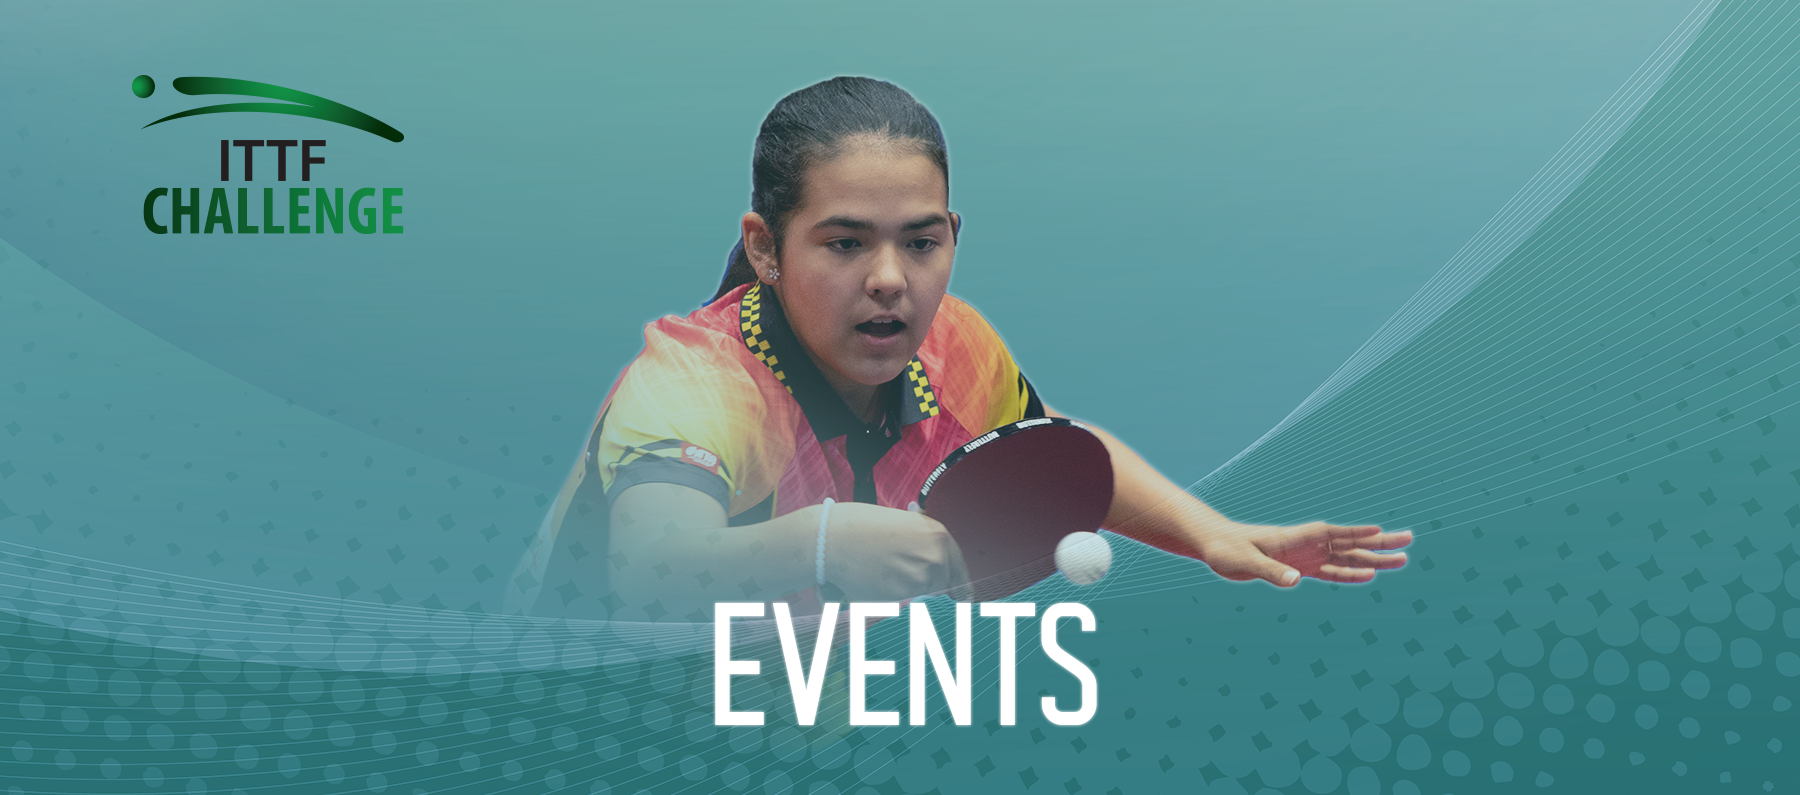 The 2019 ITTF Challenge Series will be live streamed to a global audience on Twitter ©ITTF